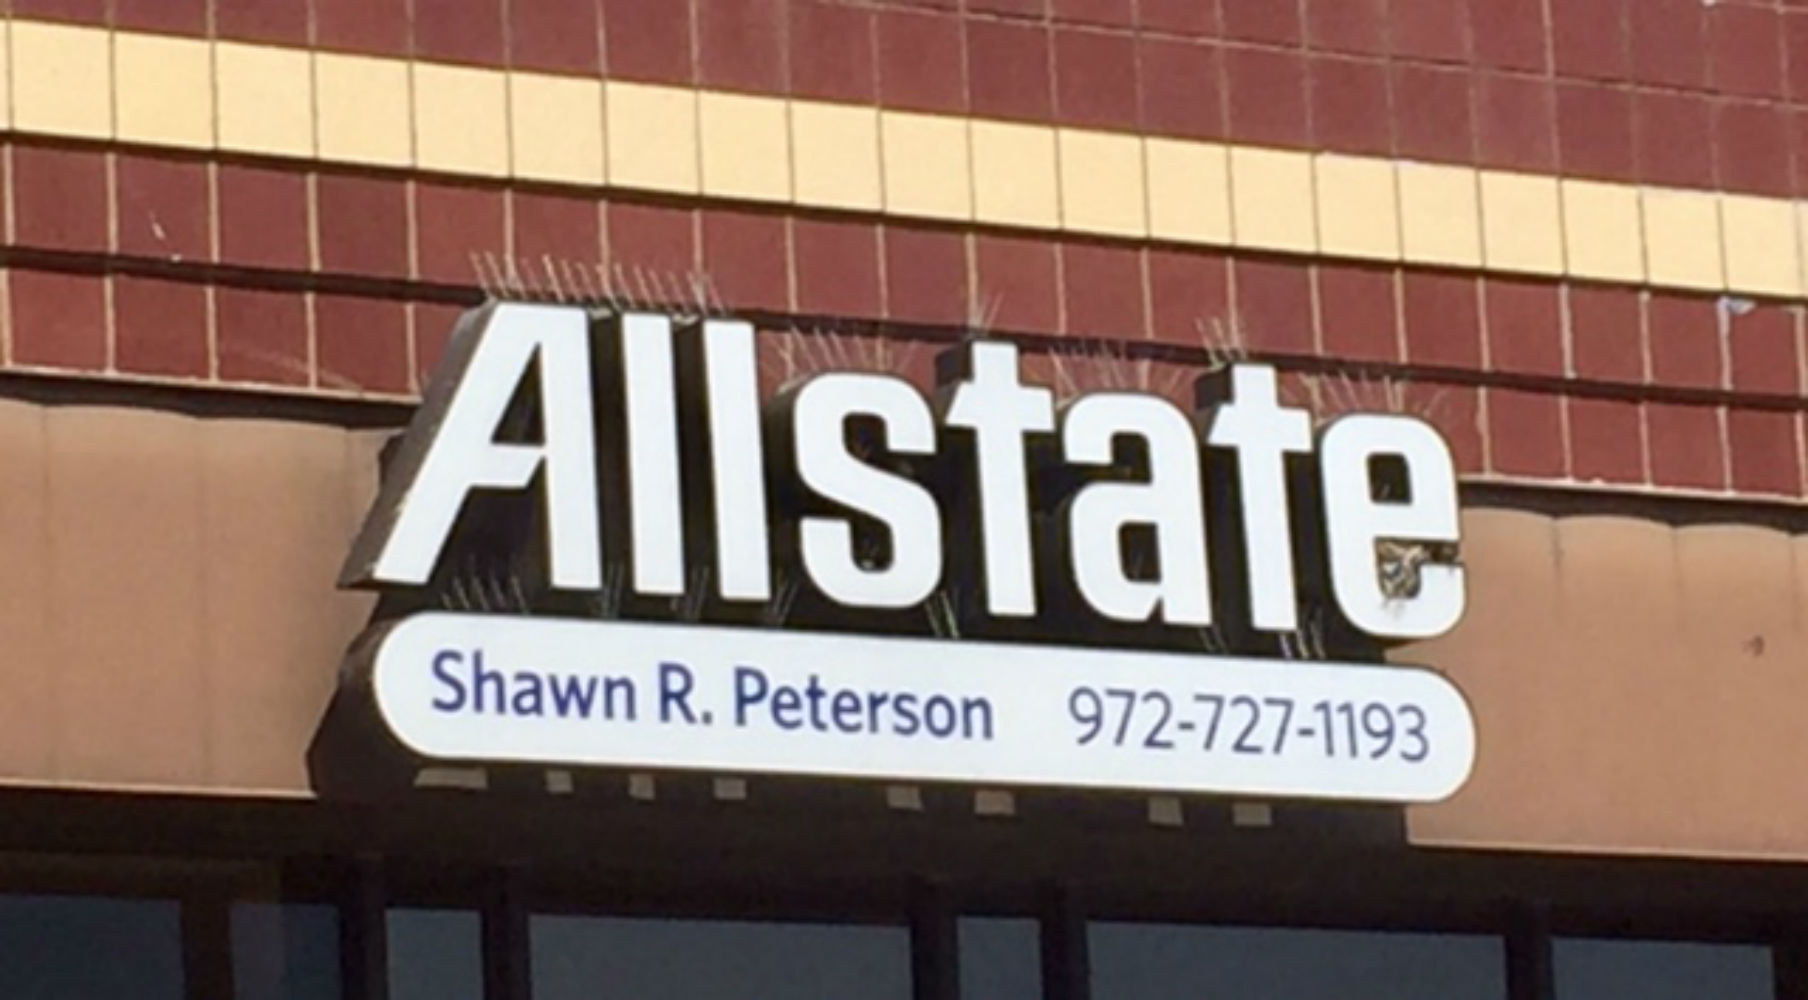 Shawn Peterson: Allstate Insurance image 1